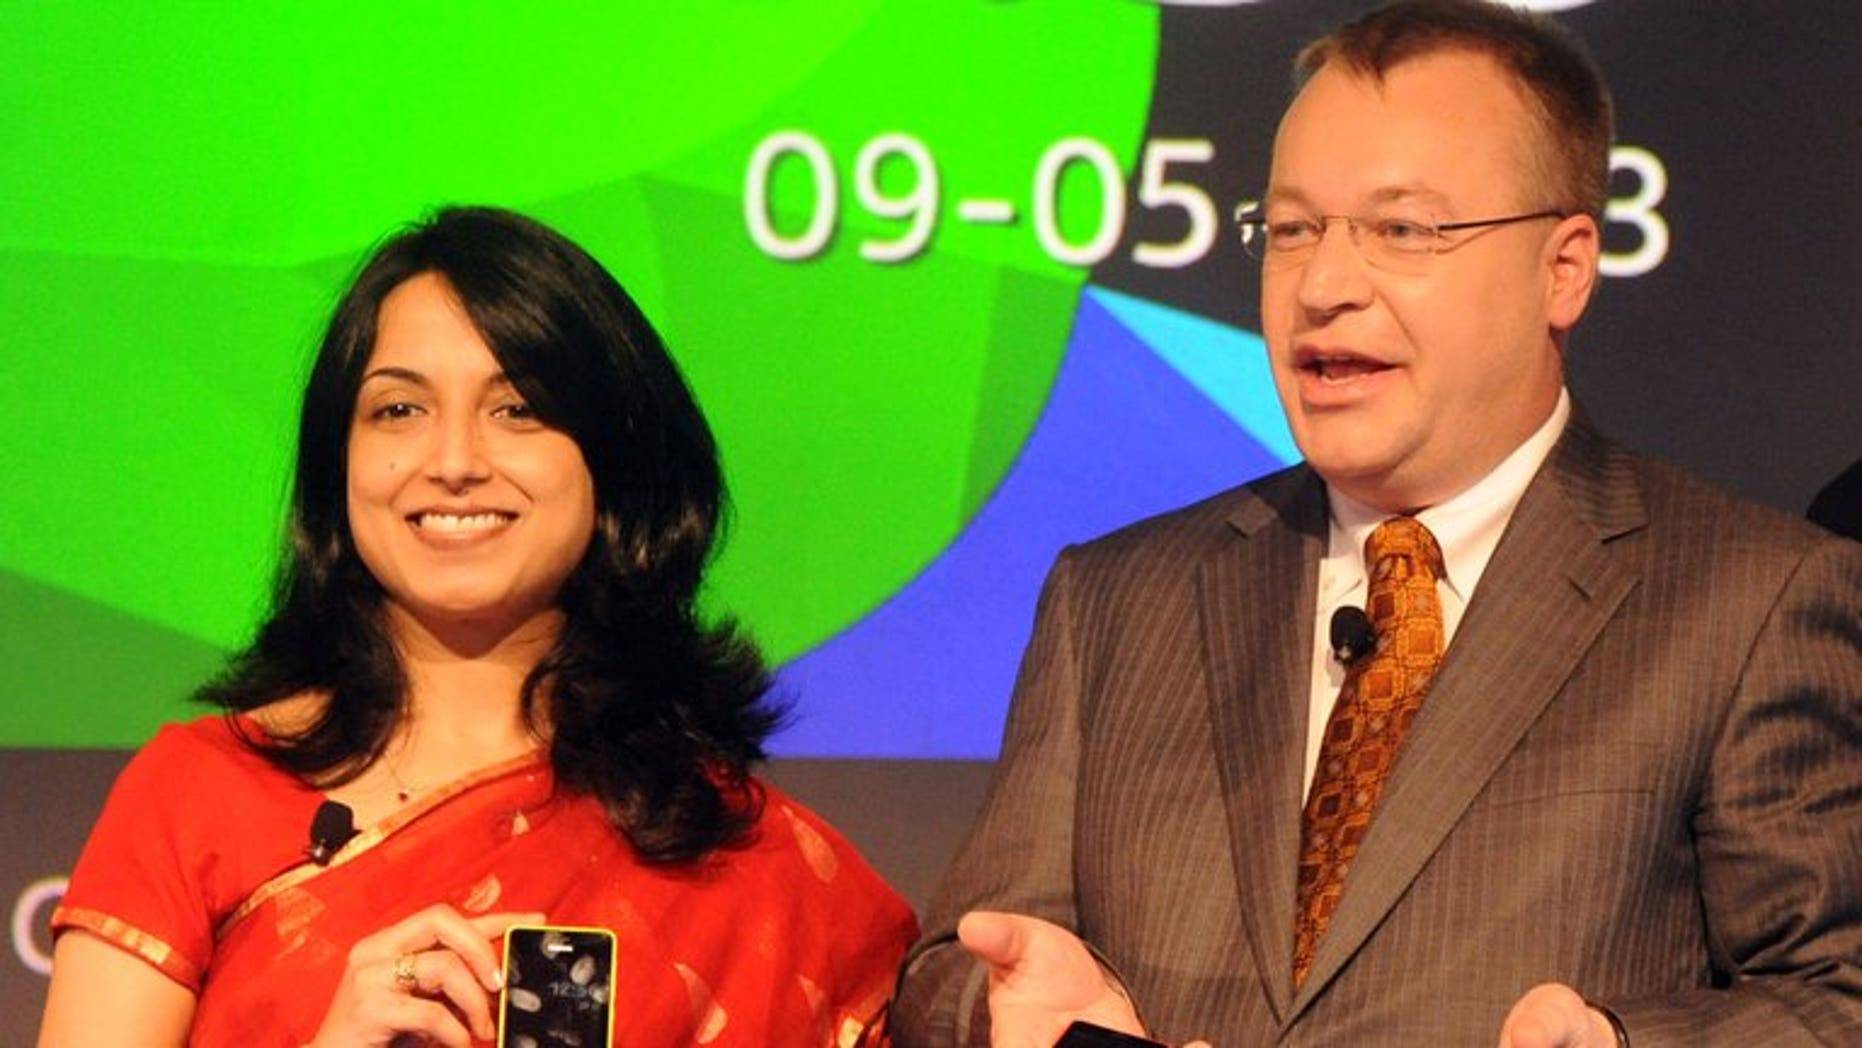 """Nokia Corporation, CEO, Stephen Elop (right) and Head-Developer Outreach of Nokia, Sangeeta Bavi hold Nokia Asha 501 cellular telephones in New Delhi on May 9, 2013. The Finnish telecom giant said Saturday it is in talks with India's government about how to create a better business climate and remains """"committed"""" to its manufacturing plant in the country."""